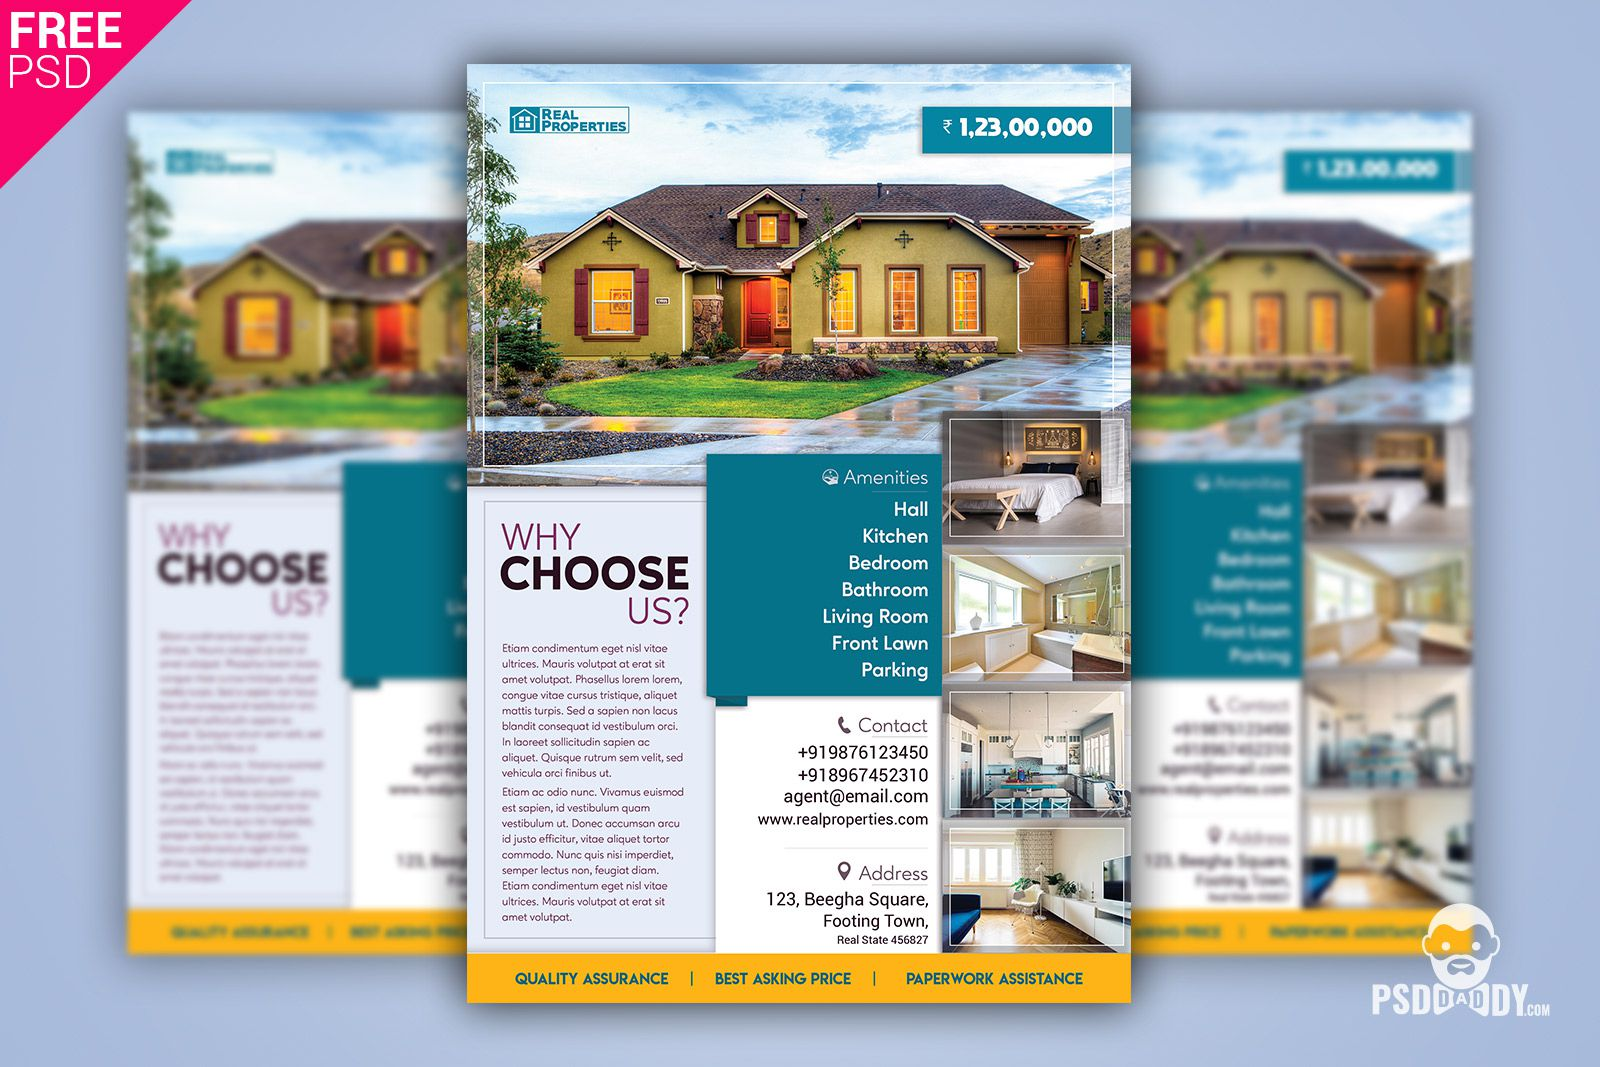 006 Top Real Estate Flyer Template Free Photo  Publisher Commercial Pdf DownloadFull